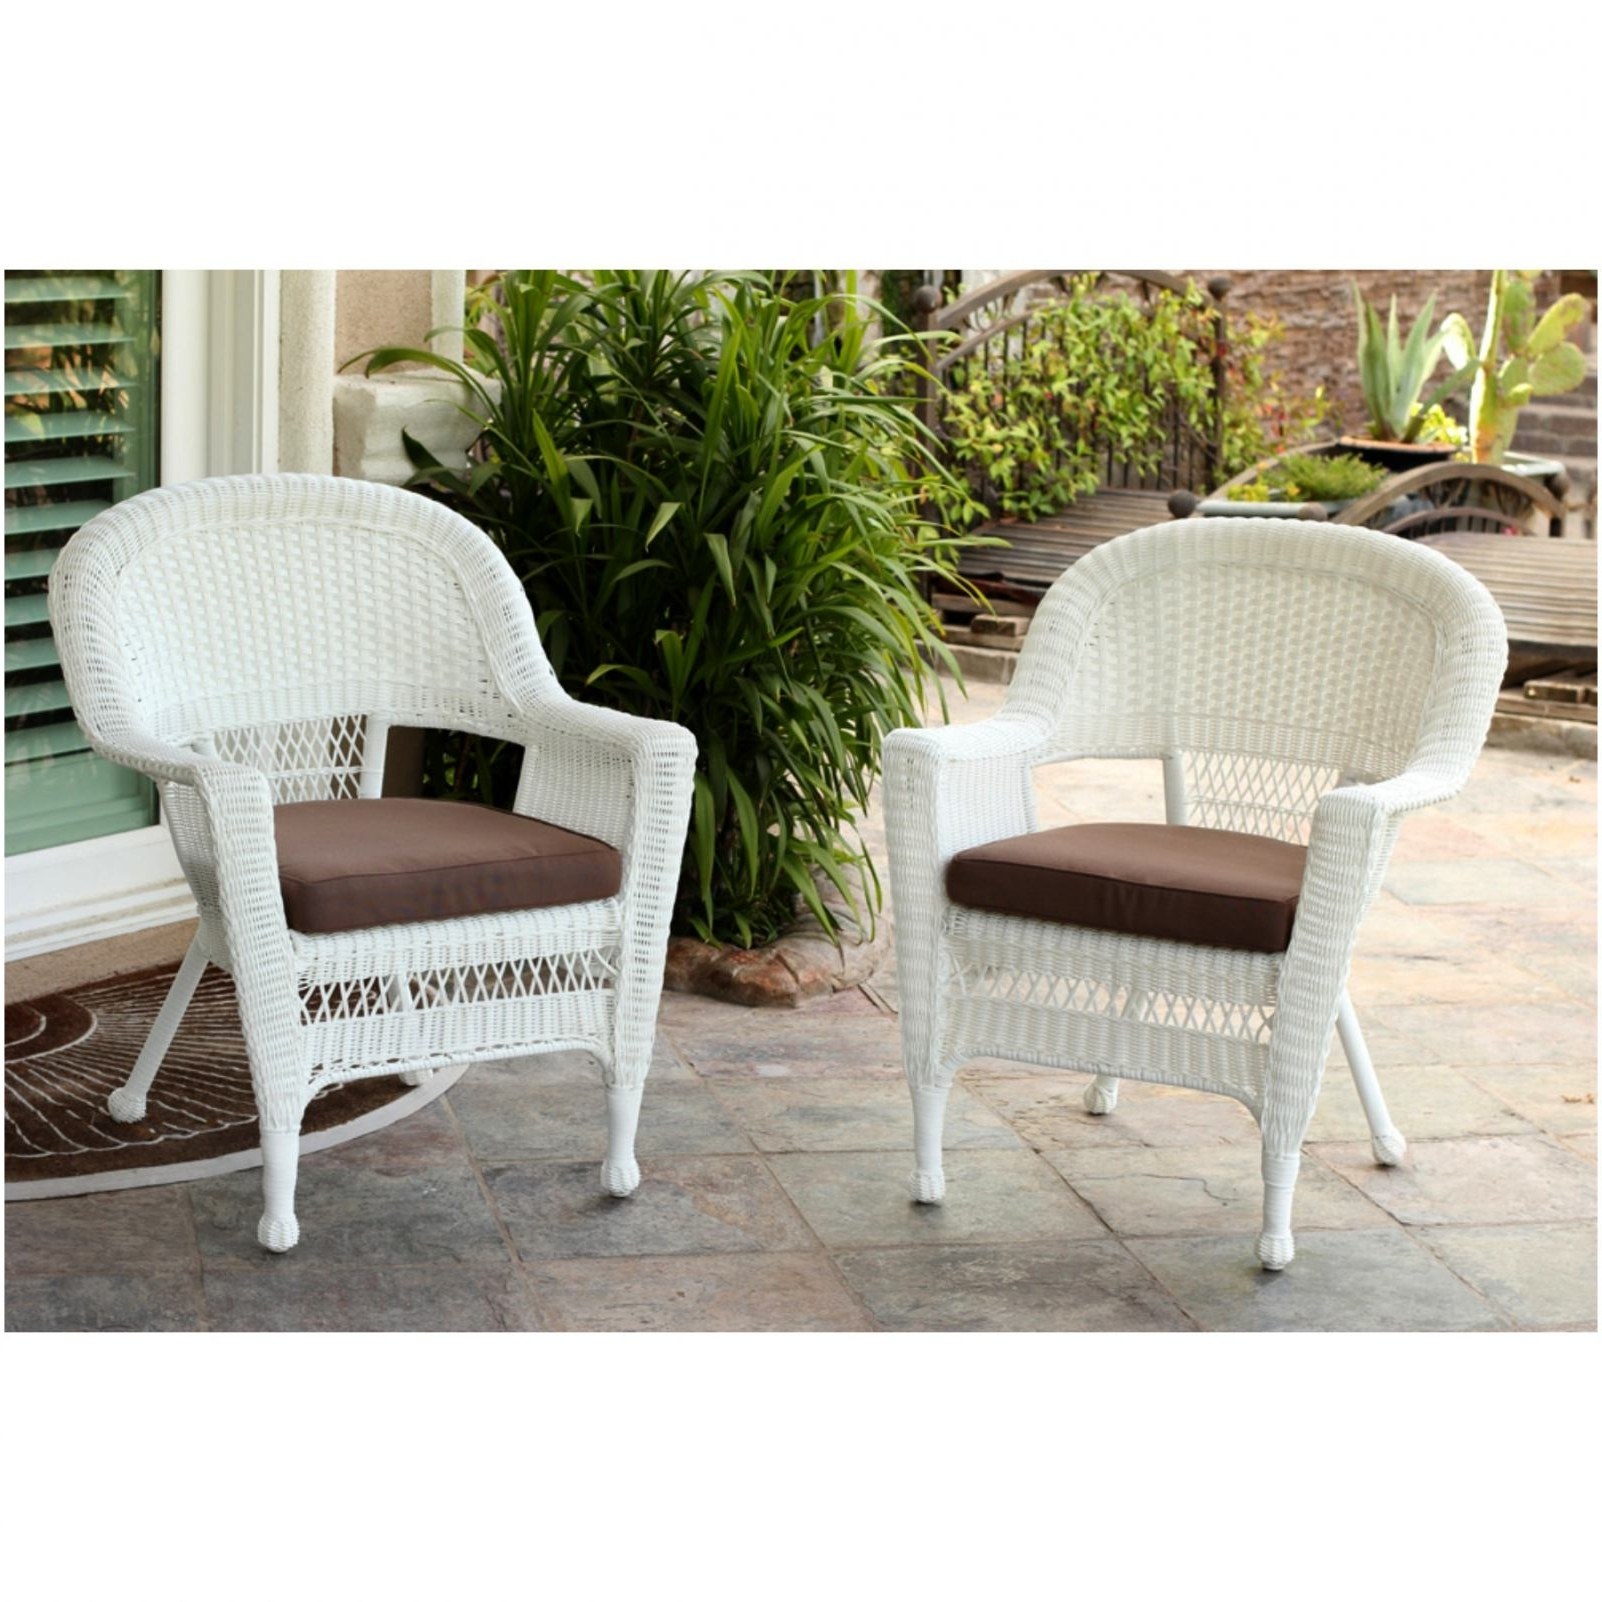 Best And Newest Secrets Kohls Outdoor Furniture Patio Savrsenizgled Com Intended For Kohl's Patio Conversation Sets (View 3 of 15)